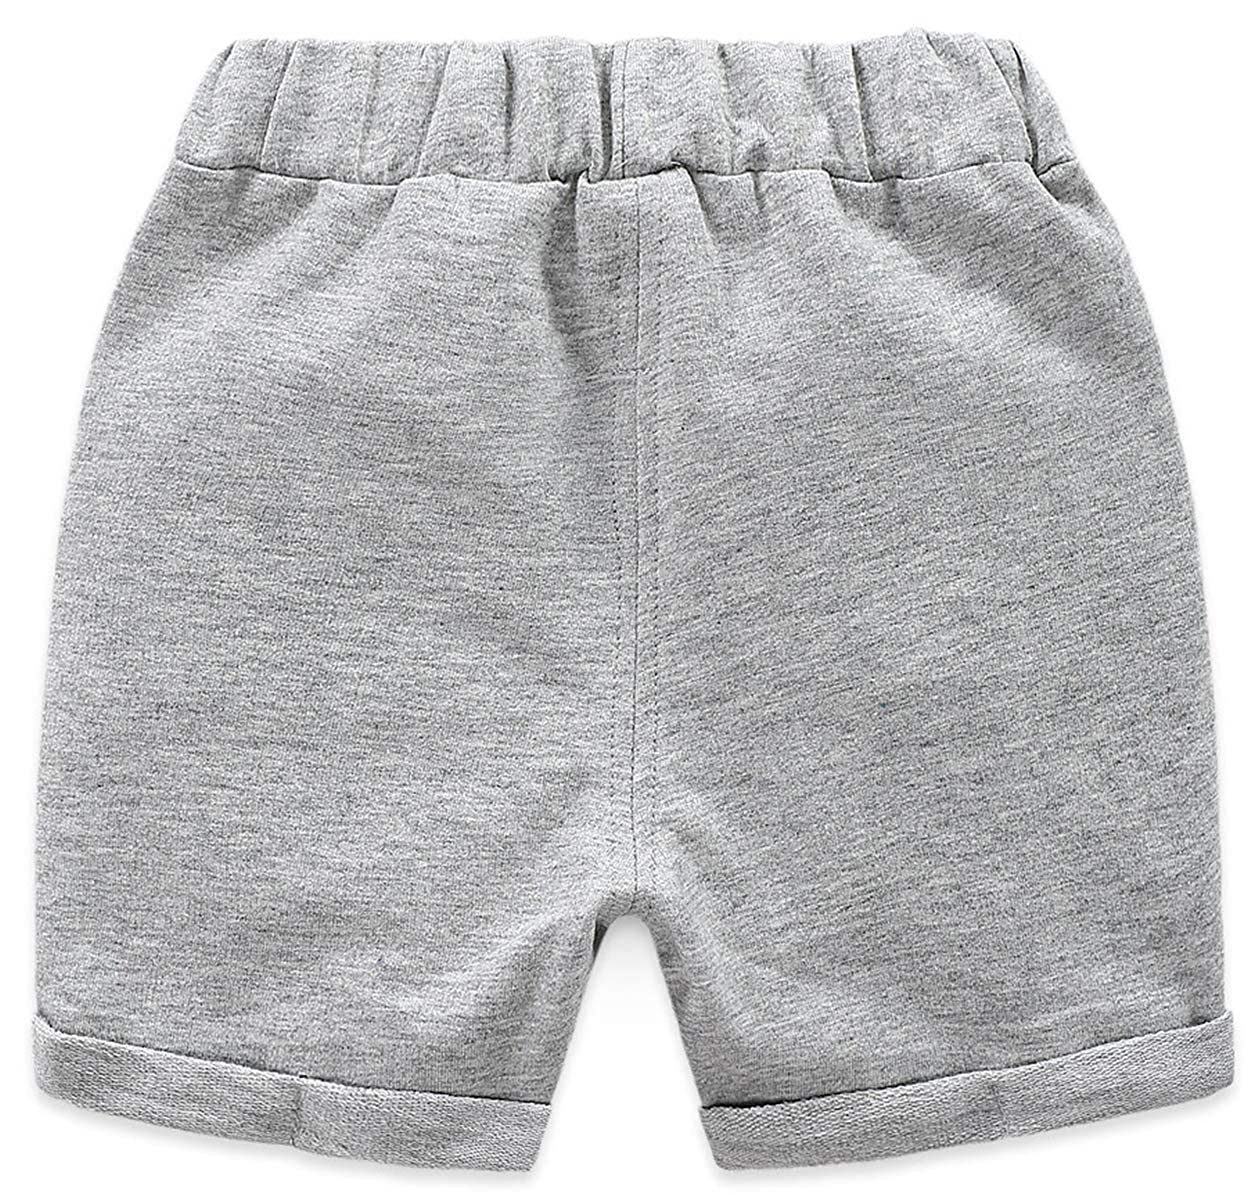 6 Years 18 Month Betusline Boys Cotton Shorts